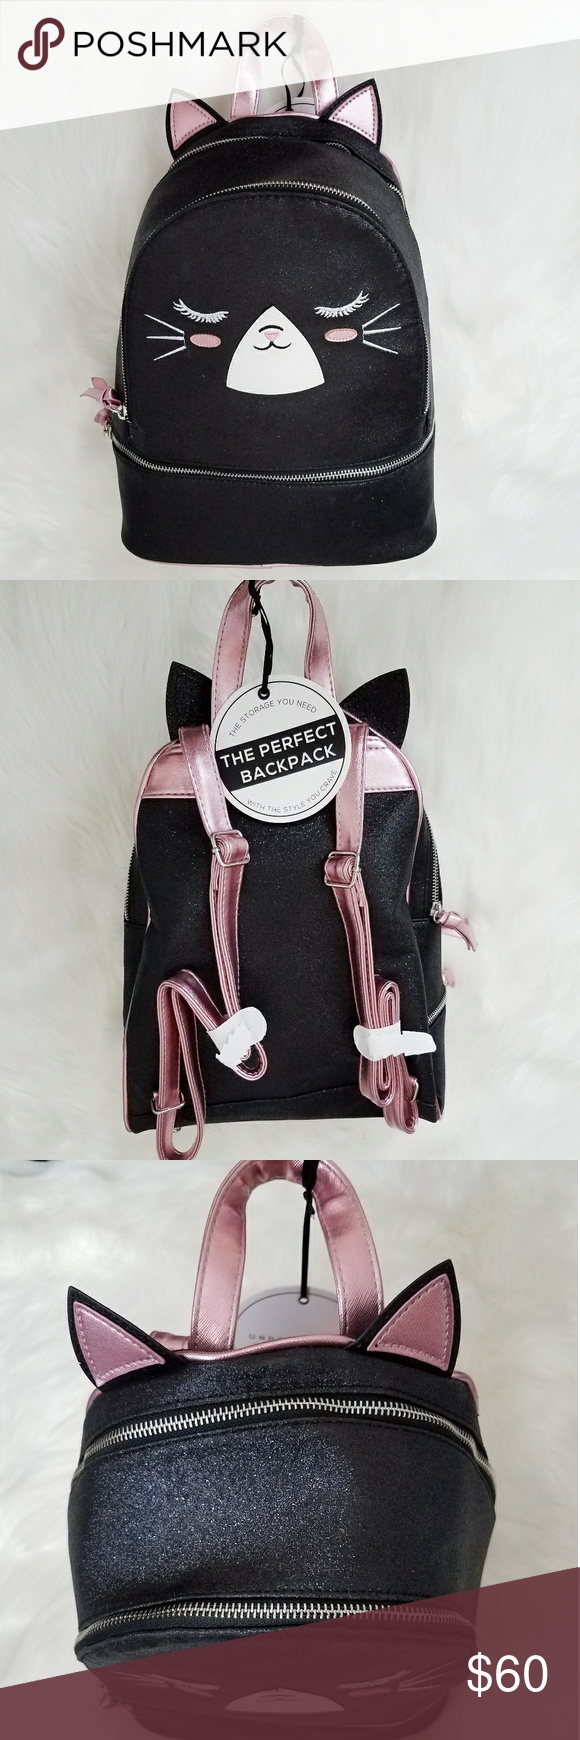 Black Glitter Kitty Backpack Under One Sky Pink New with